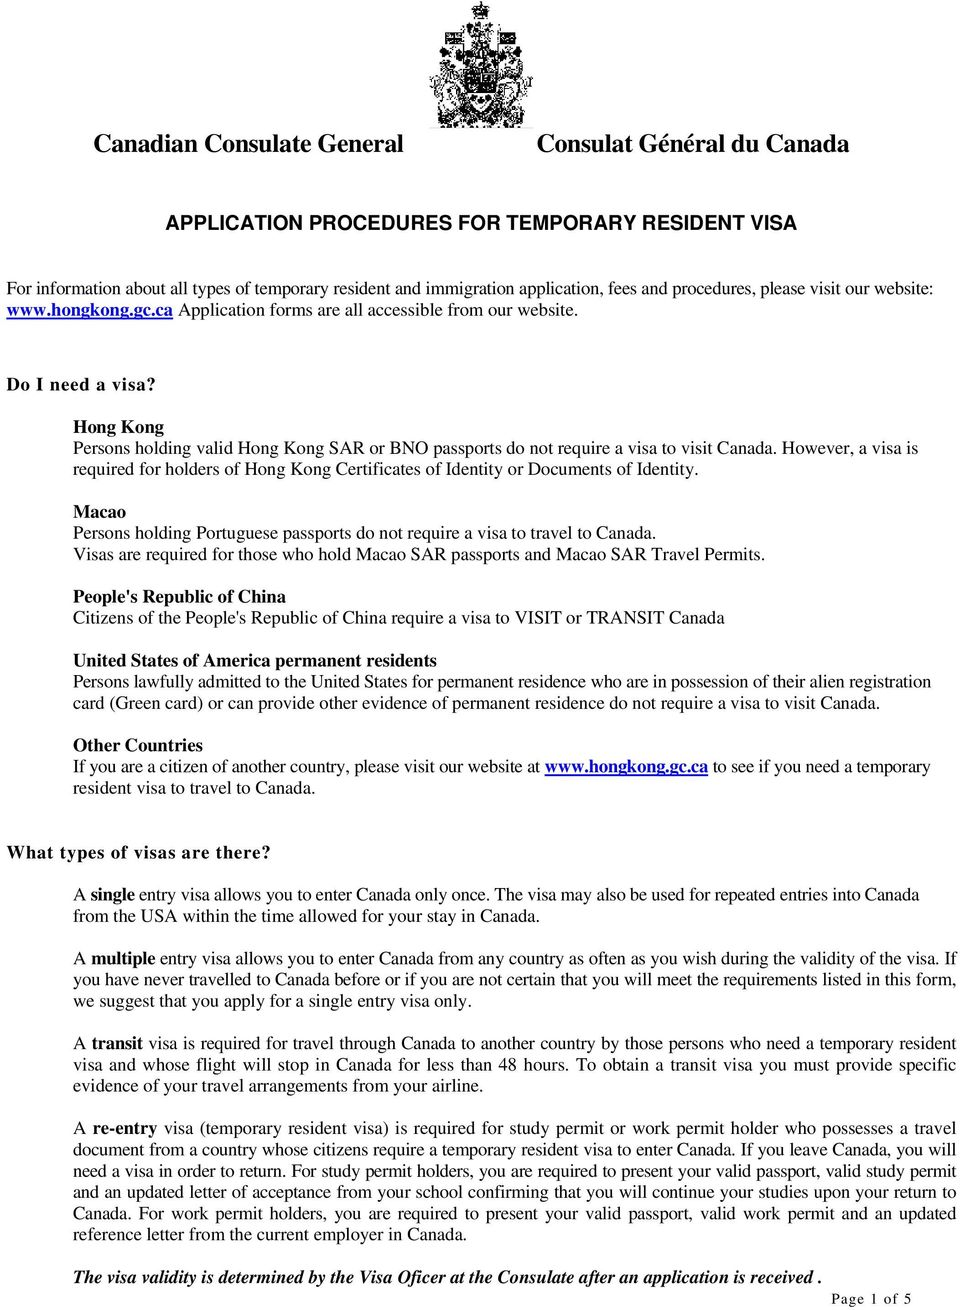 APPLICATION PROCEDURES FOR TEMPORARY RESIDENT VISA - PDF